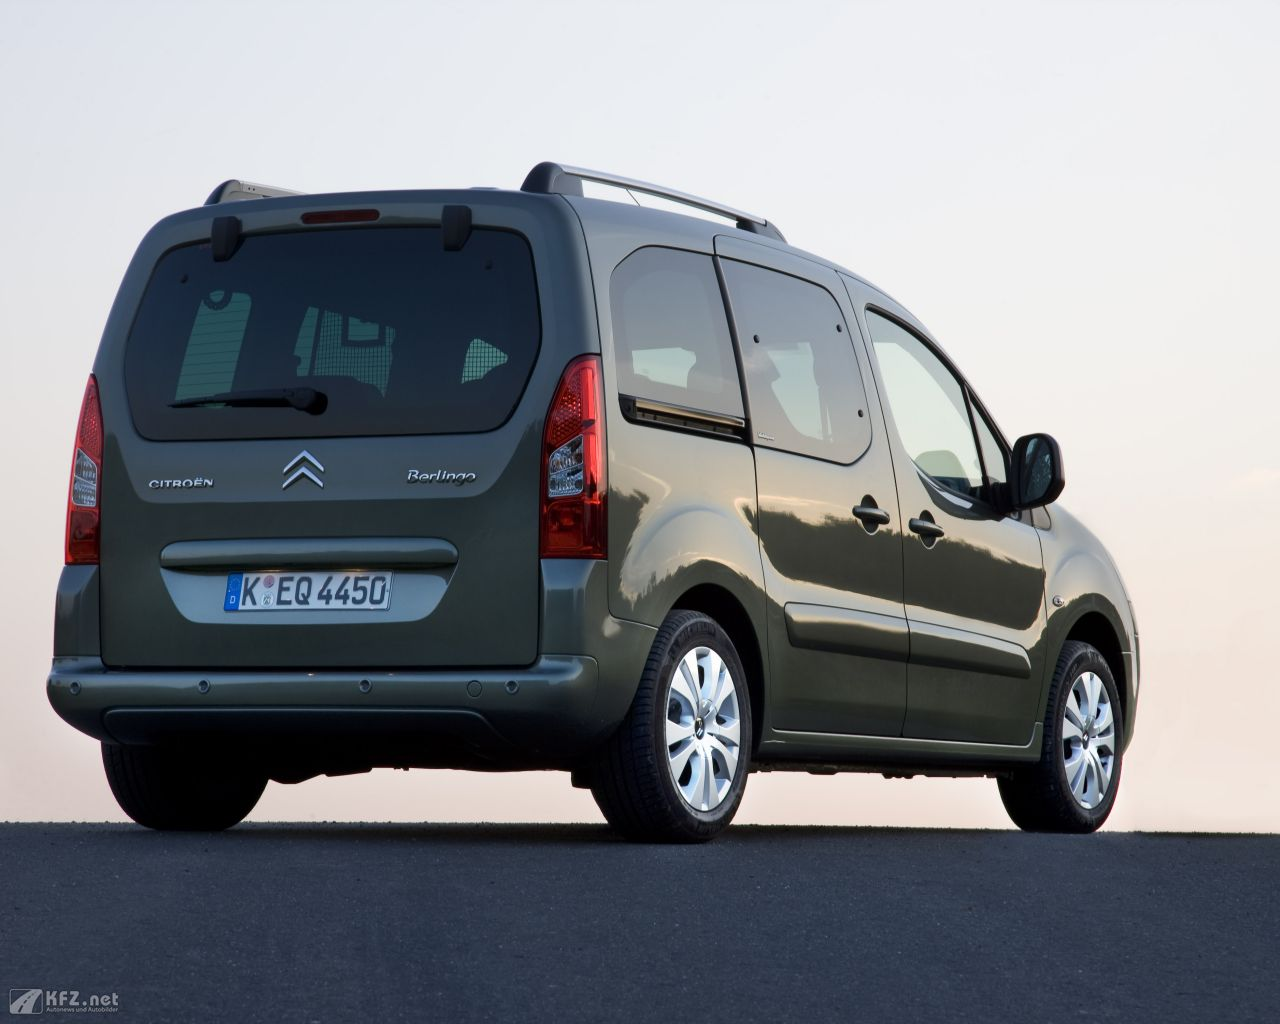 citroen-berlingo-1280x1024-141